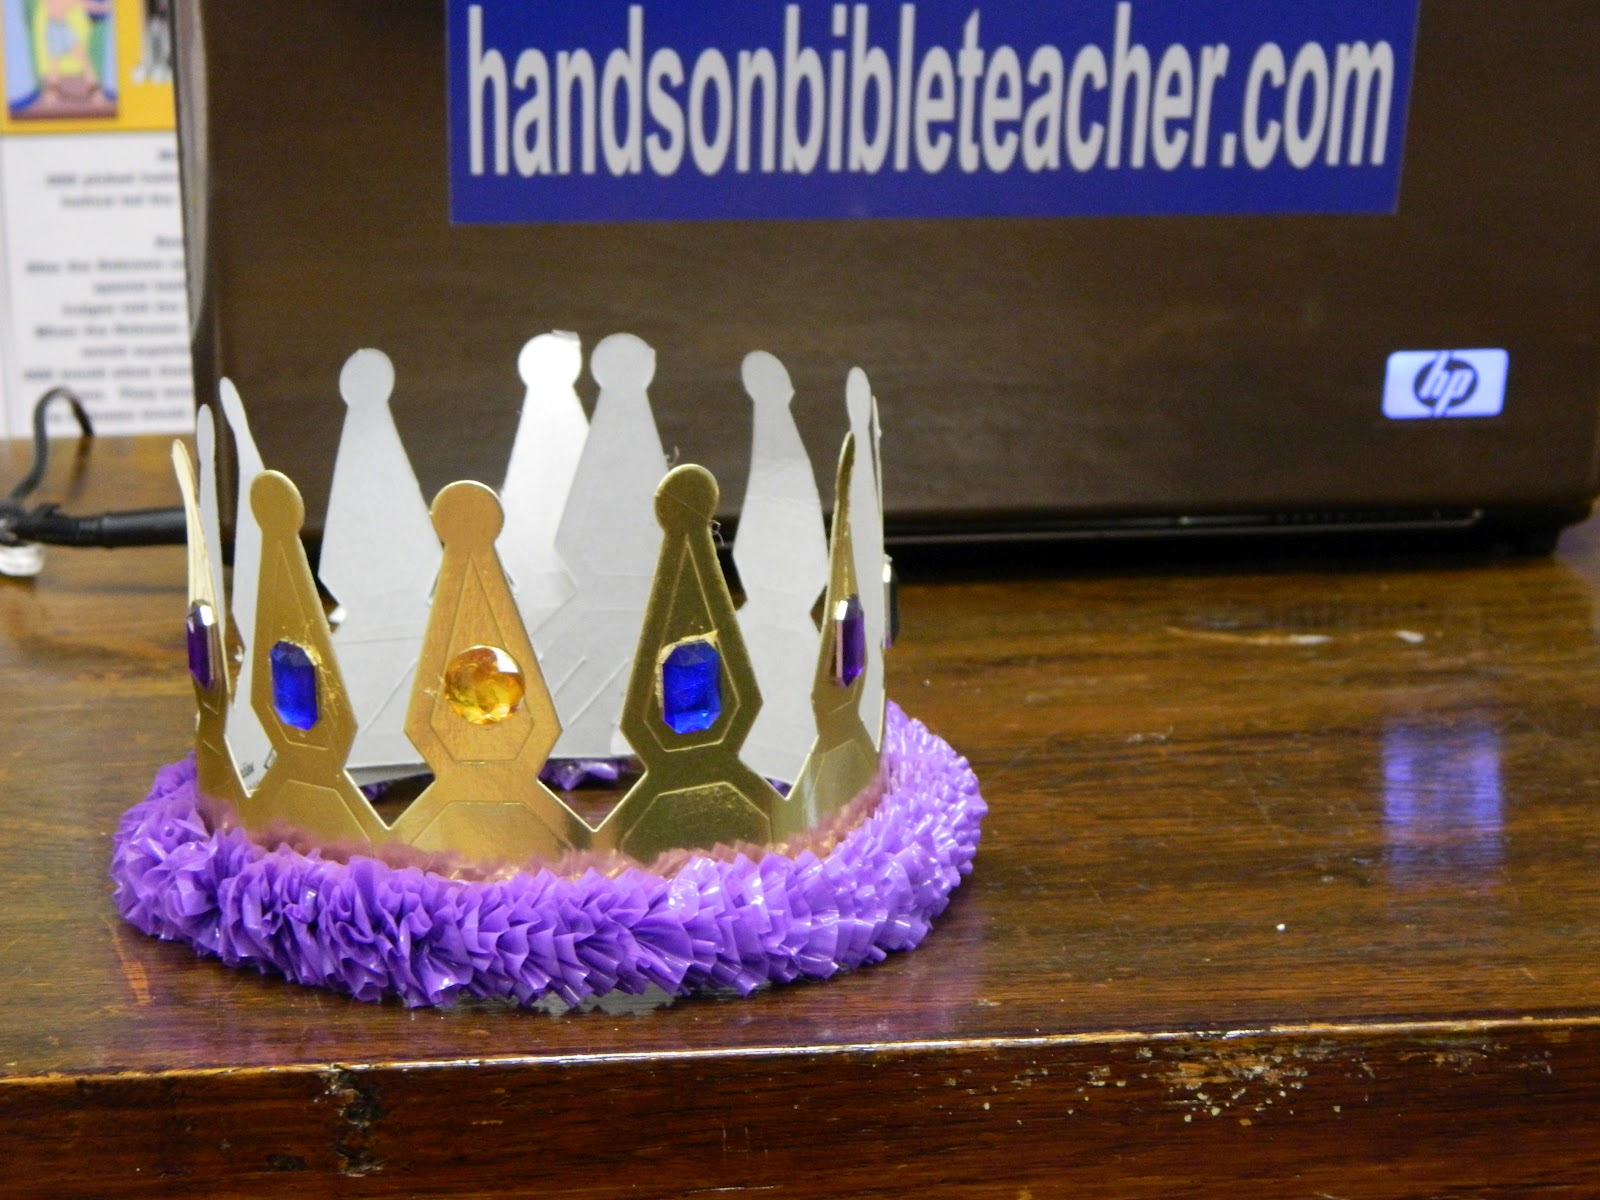 Hands On Bible Teacher David Crowned King